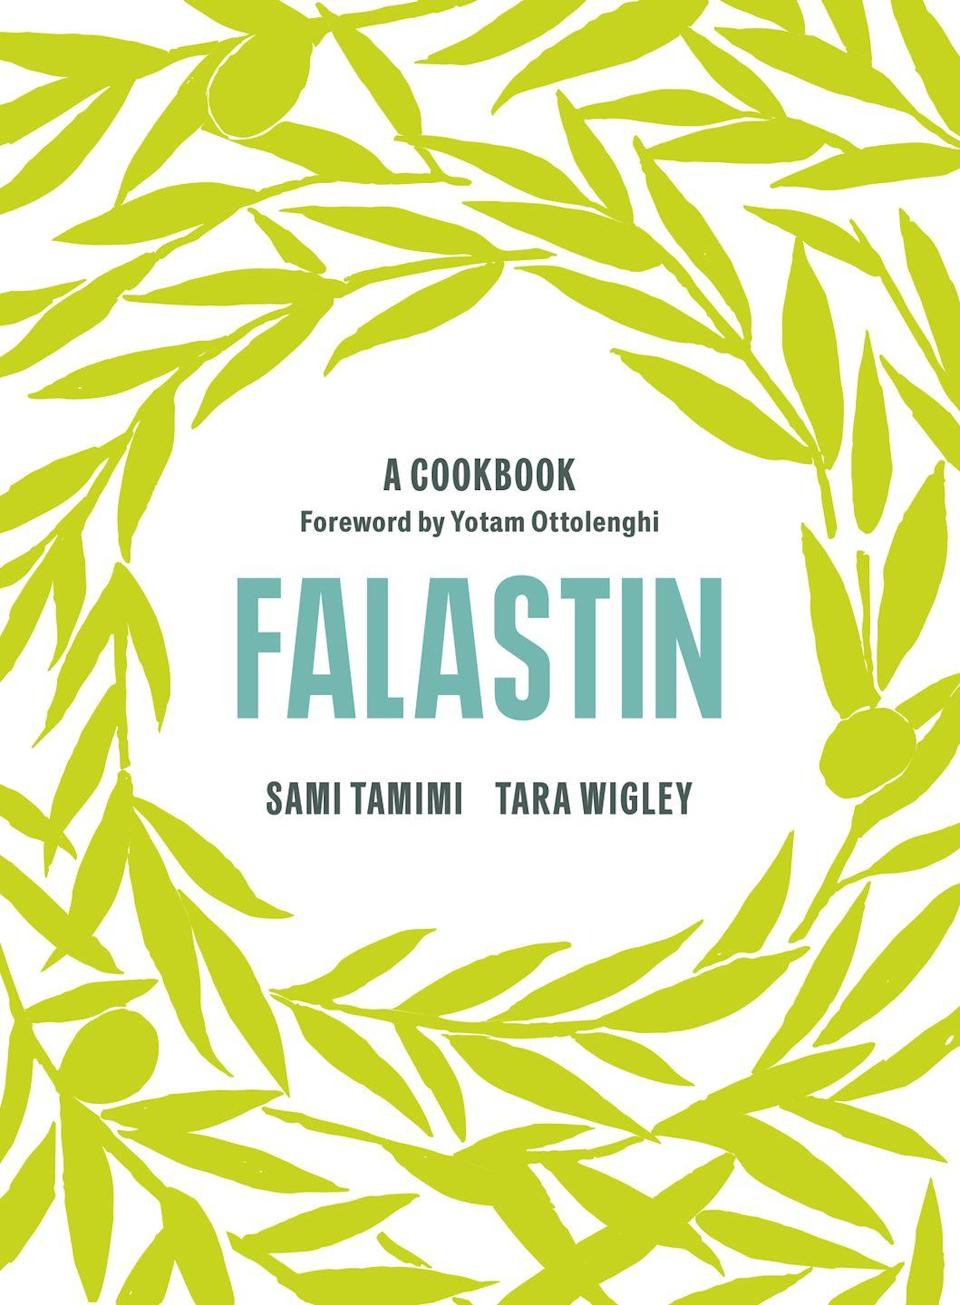 "<p>A love letter to the food and people of Palestine, featuring recipes and stories that take the reader on a virtual journey through Bethlehem, East Jerusalem, Nablus, Haifa, Akka, Nazareth and the West Bank. Sami Tamimi and Tara Wigley's Falastin provides a delectable mix of the traditional and the contemporary. Shining a fresh light on the Palestinian pantry, recipes include roasted cod with a coriander crust, sweet tahini rolls, and labneh cheesecake with roasted apricots, honey and cardamom. With ideas for both everyday meals and shareable feasts, Falastin is full of recipes that you will fall in love with. </p><p><a href=""https://www.amazon.co.uk/Falastin-Cookbook-Sami-Tamimi/dp/1785038729/ref=sr_1_1?crid=2LRHMQGZZJV5I&dchild=1&keywords=falastin+the+cookbook&qid=1604167917&s=books&sprefix=falastin%2Cstripbooks%2C209&sr=1-1"" rel=""nofollow noopener"" target=""_blank"" data-ylk=""slk:'Falastin: a Cookbook'"" class=""link rapid-noclick-resp"">'Falastin: a Cookbook'</a> by Sami Tamimi and Tara Wigley (£27, Ebury Press) is out now.</p>"